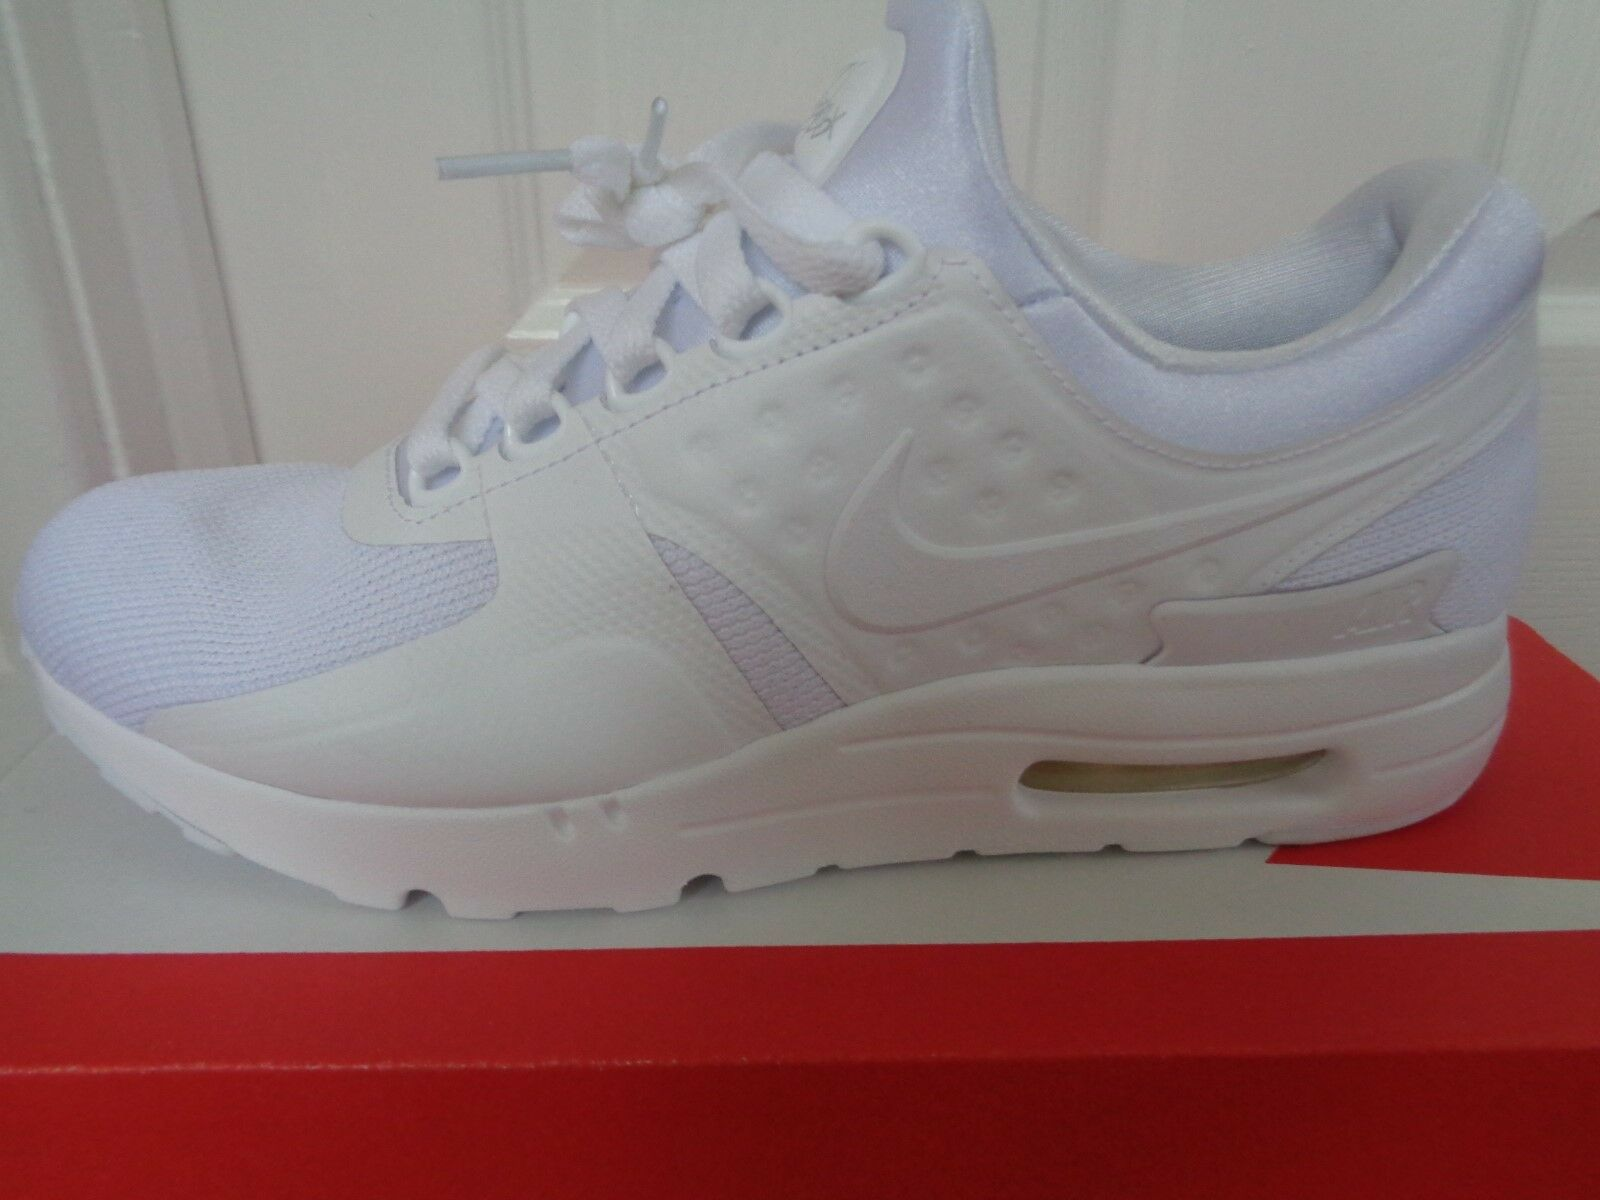 Nike Air Max Zero essential trainers shoes 876070 100 eu 39 us 6.5 NEW+BOX